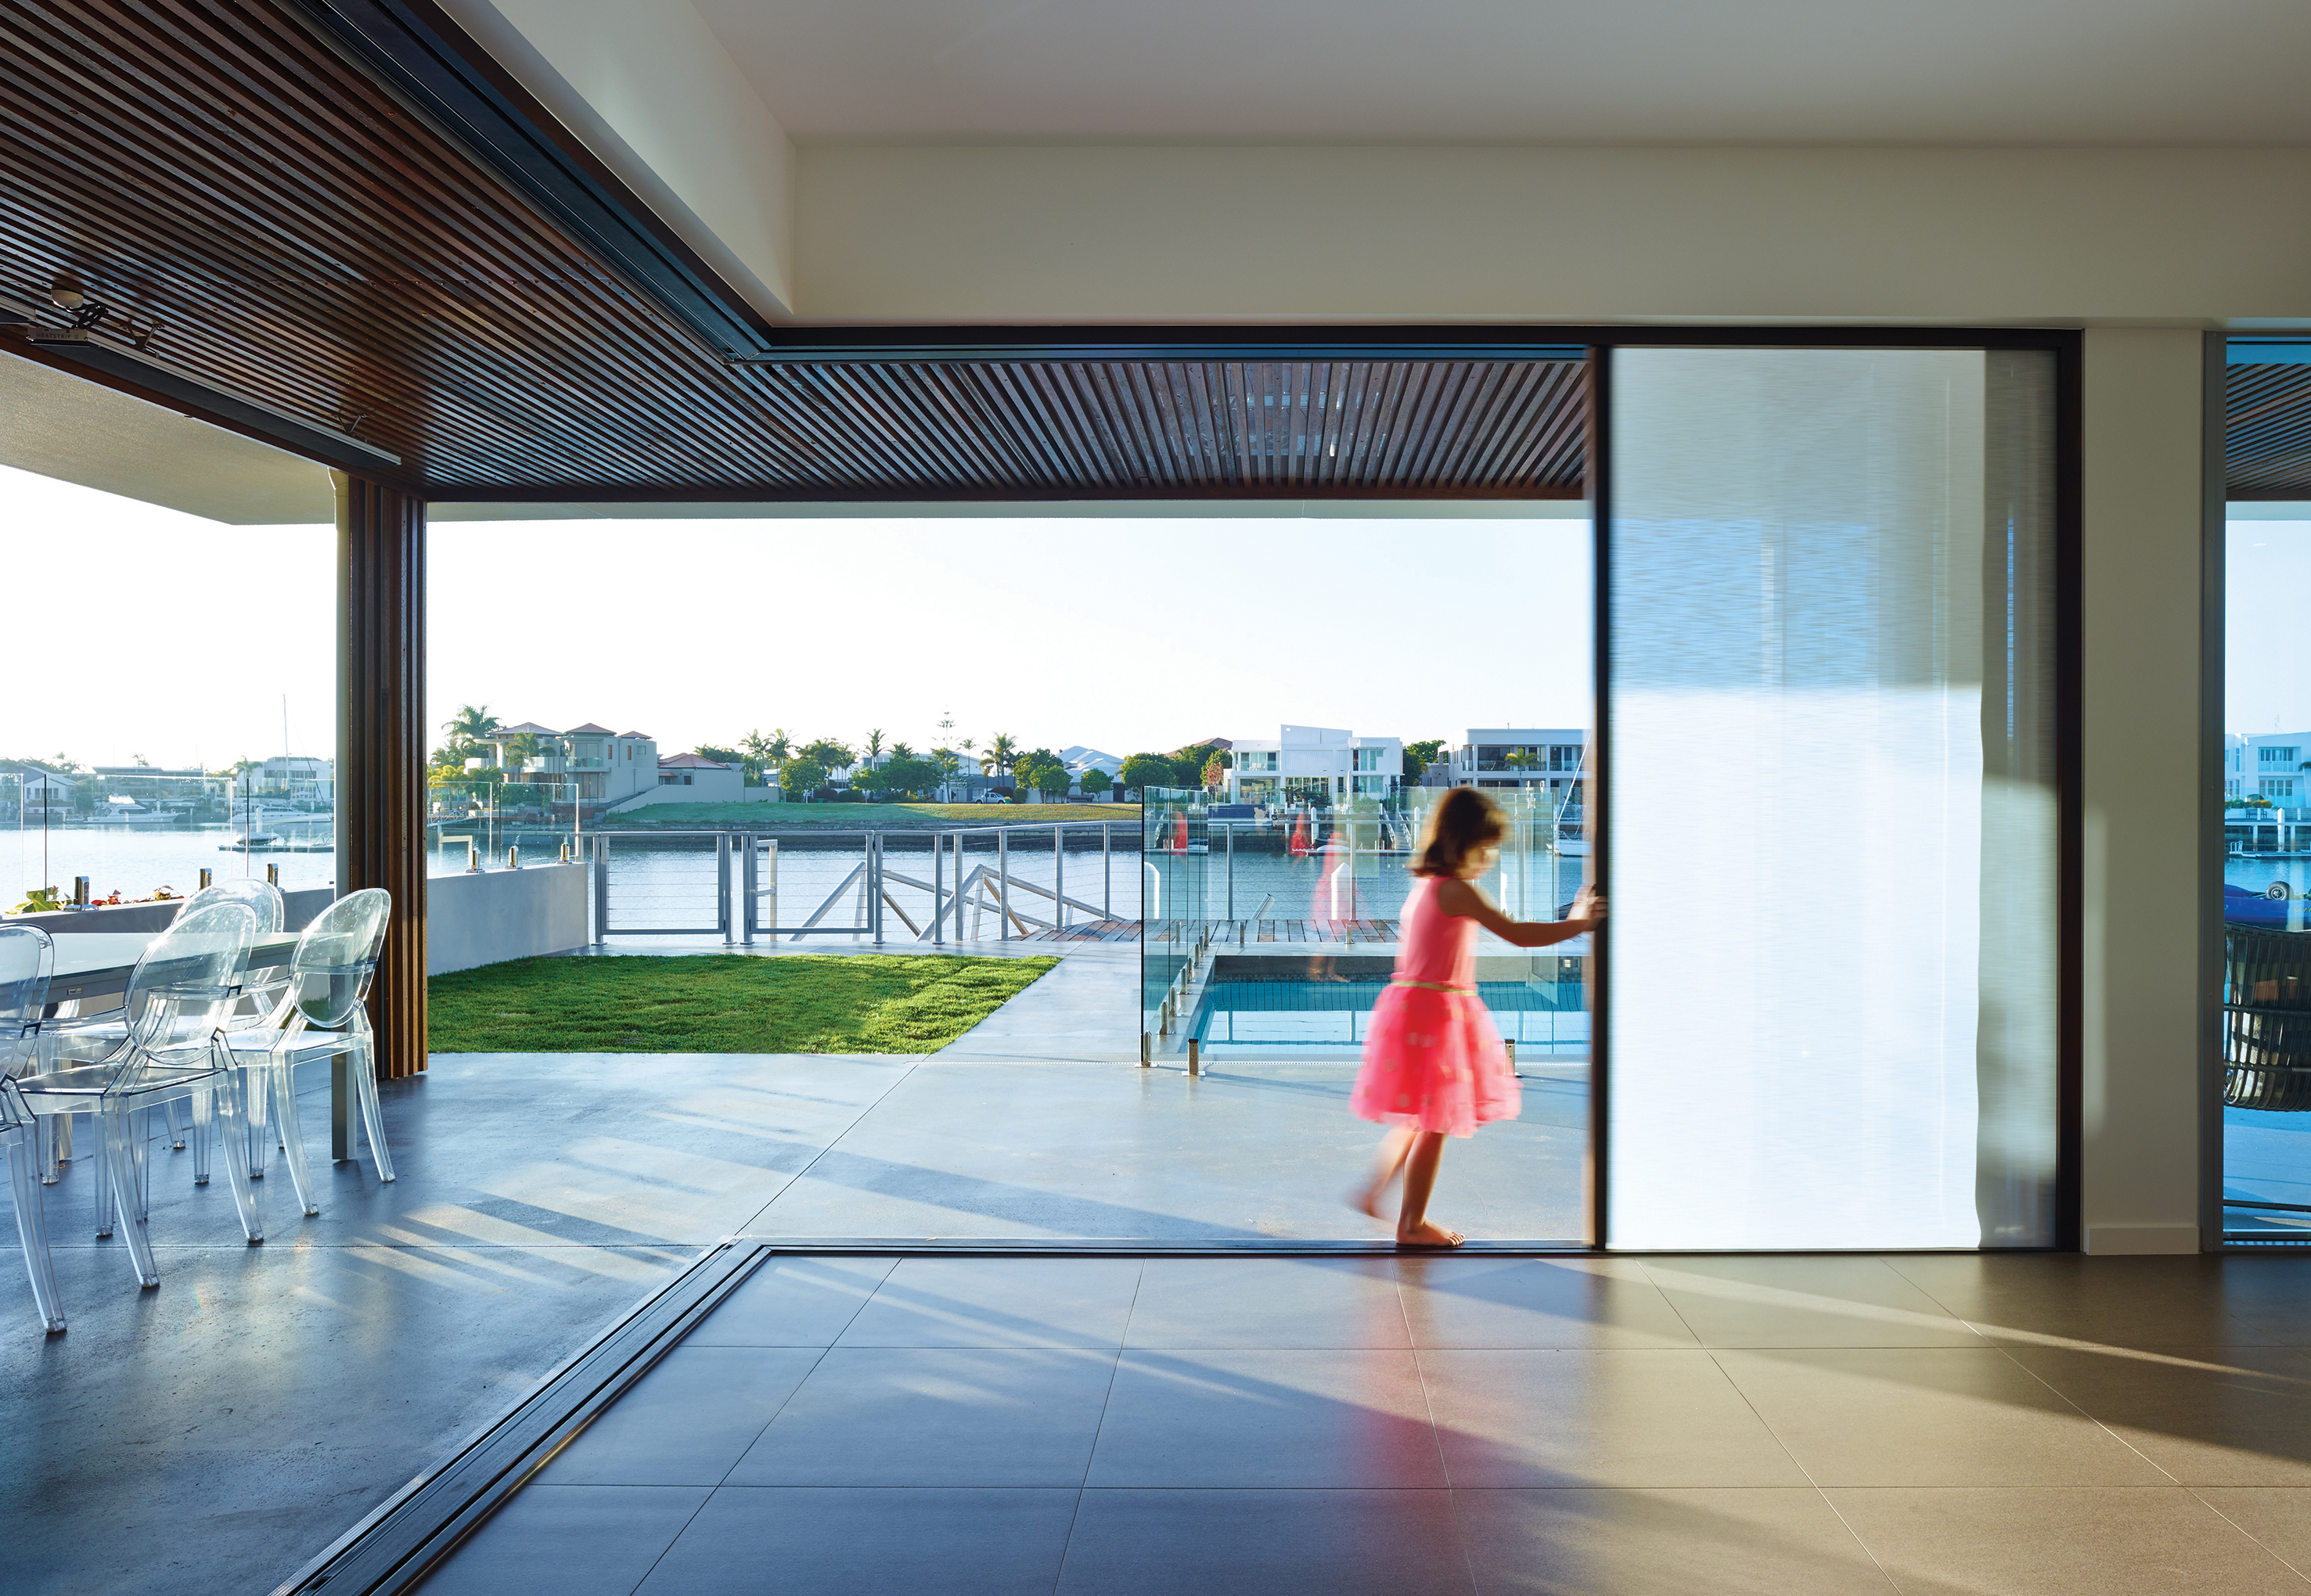 [PRESSWIRE] London United Kingdom - 30.03.15 -- Centor is celebrating worldwide recognition of its pioneering Integrated Doors after winning a Red Dot ... & Centor wins prestigious Red Dot Award 2015 | Presswire